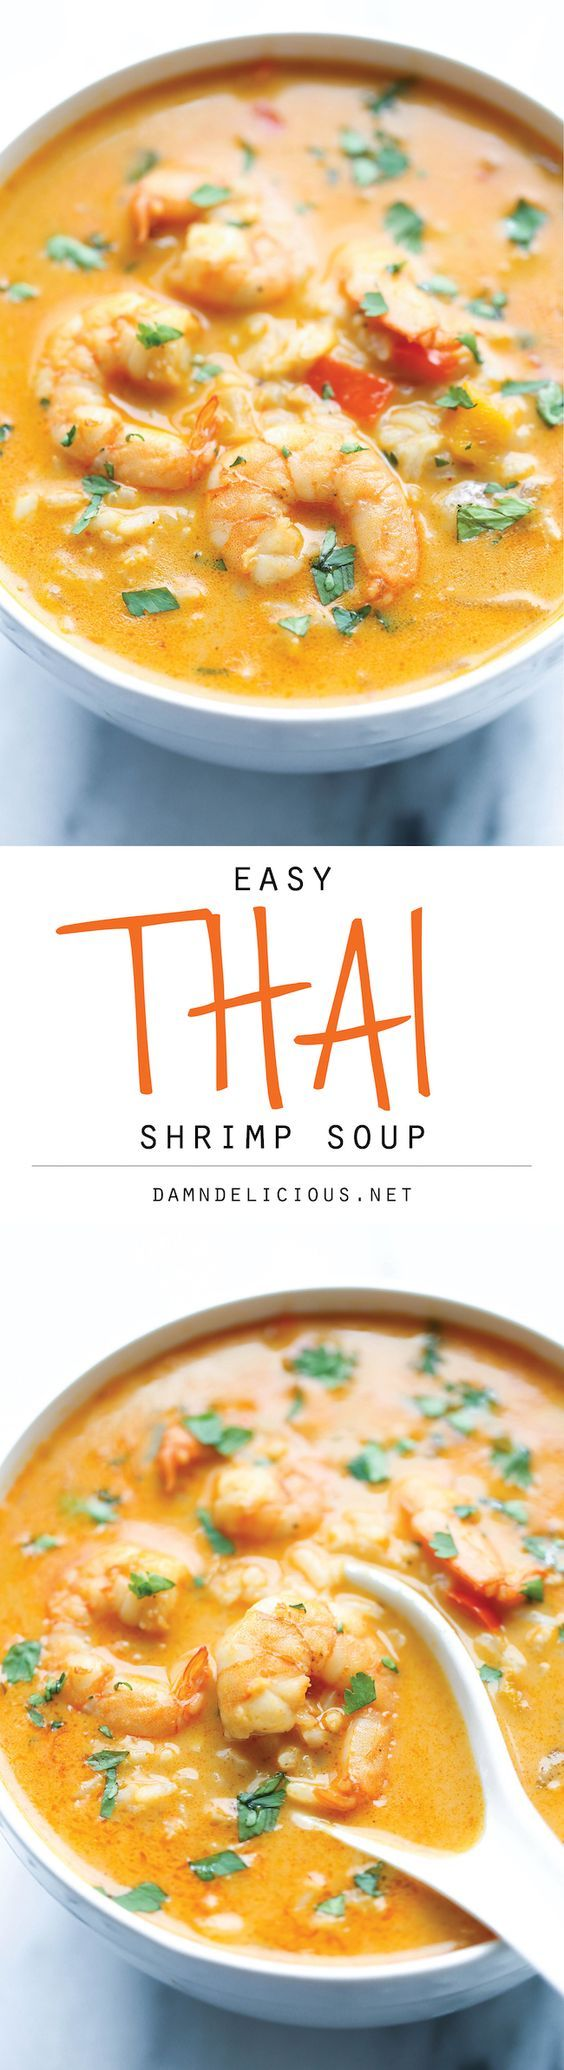 Best 25 exotic food ideas on pinterest indian dishes best easy thai shrimp soup forumfinder Image collections